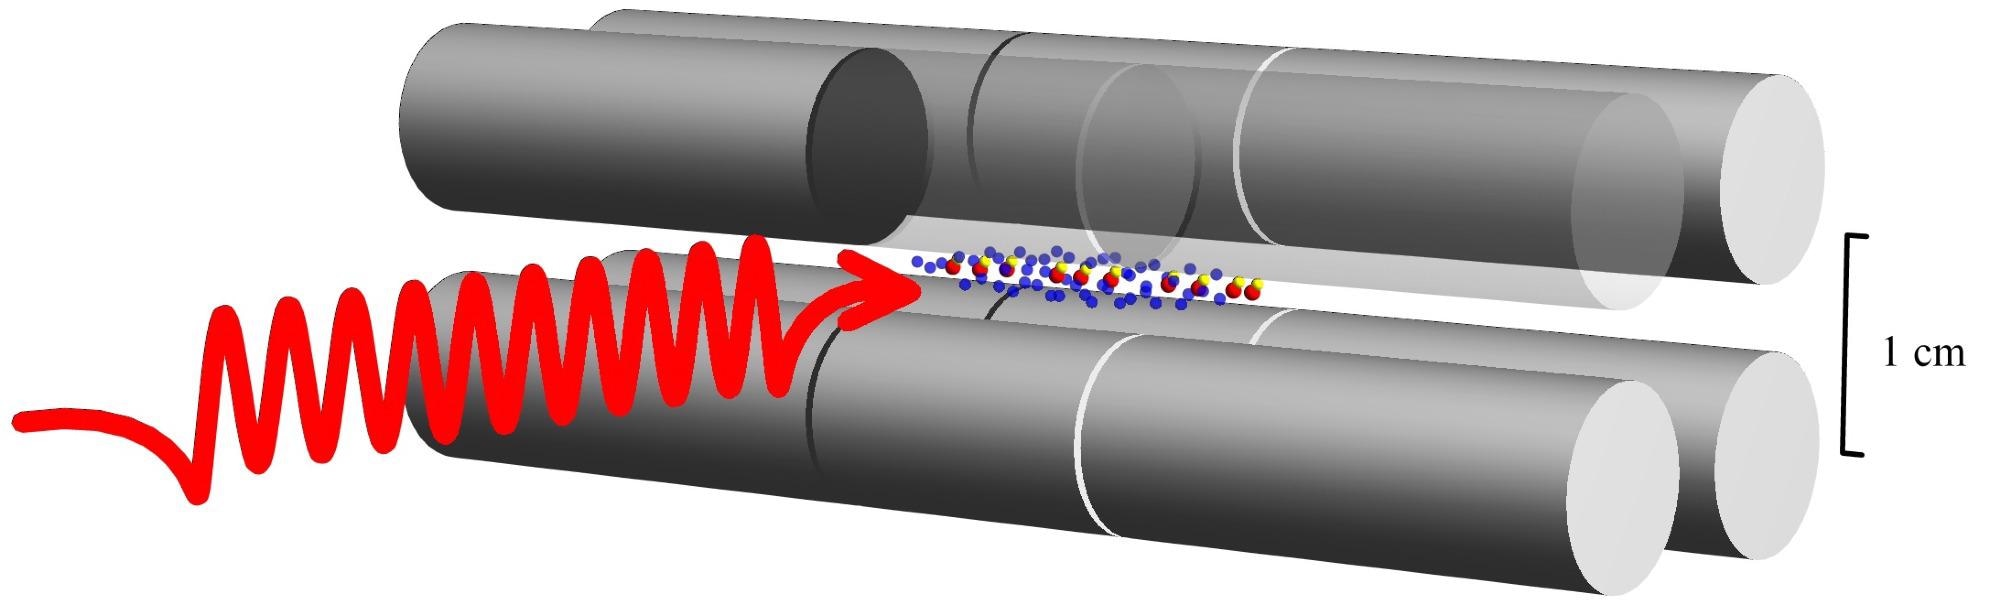 HD+ molecular ions (yellow and red dot pairs) in an ion trap (grey) are irradiated by a laser wave (red). This causes quantum jumps, whereby the vibrational state of the molecular ions changes.